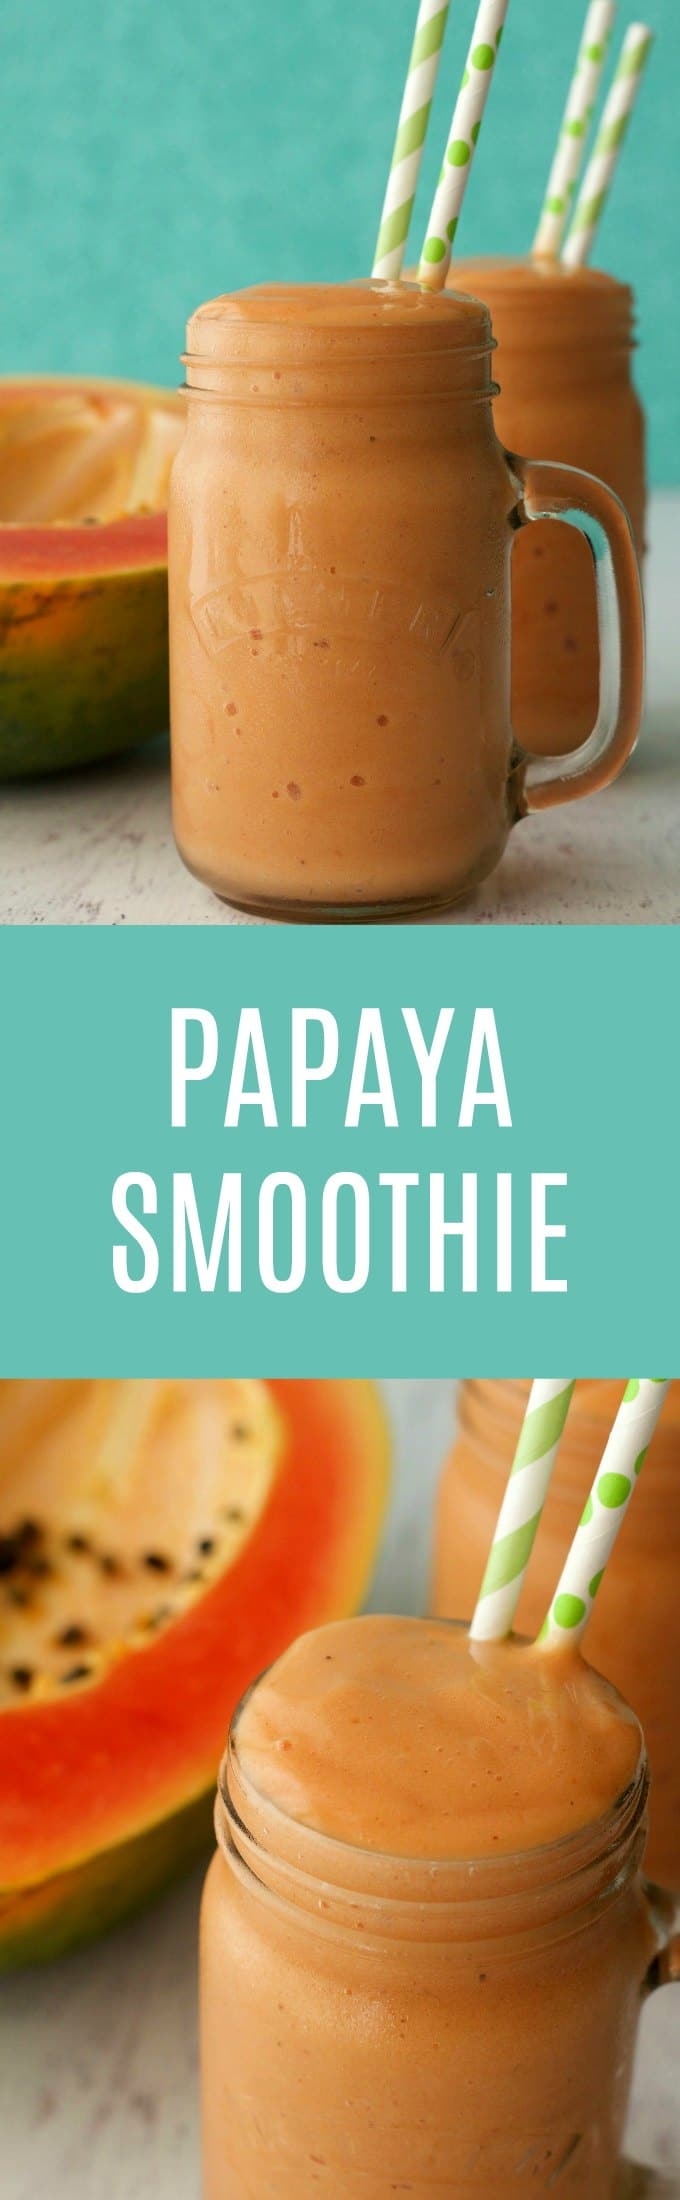 Double-thick and creamy papaya smoothie. This 2-ingredient smoothie tastes like a decadent double-thick milkshake yet it's only the healthiest ingredients. Vegan and Gluten-Free. | lovingitvegan.com